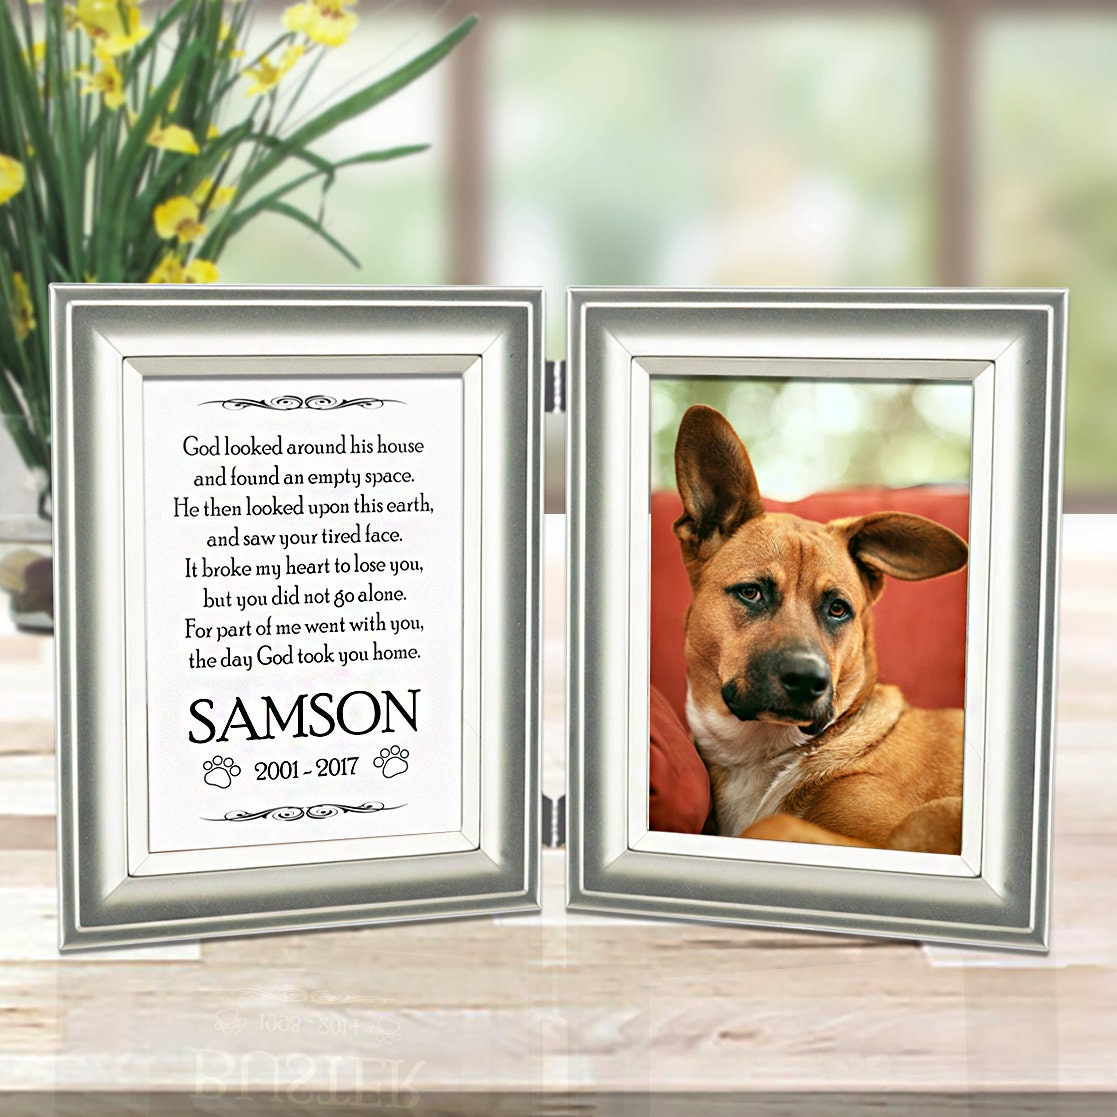 Dog Memorial Frame Personalized Name Engraved On Metal